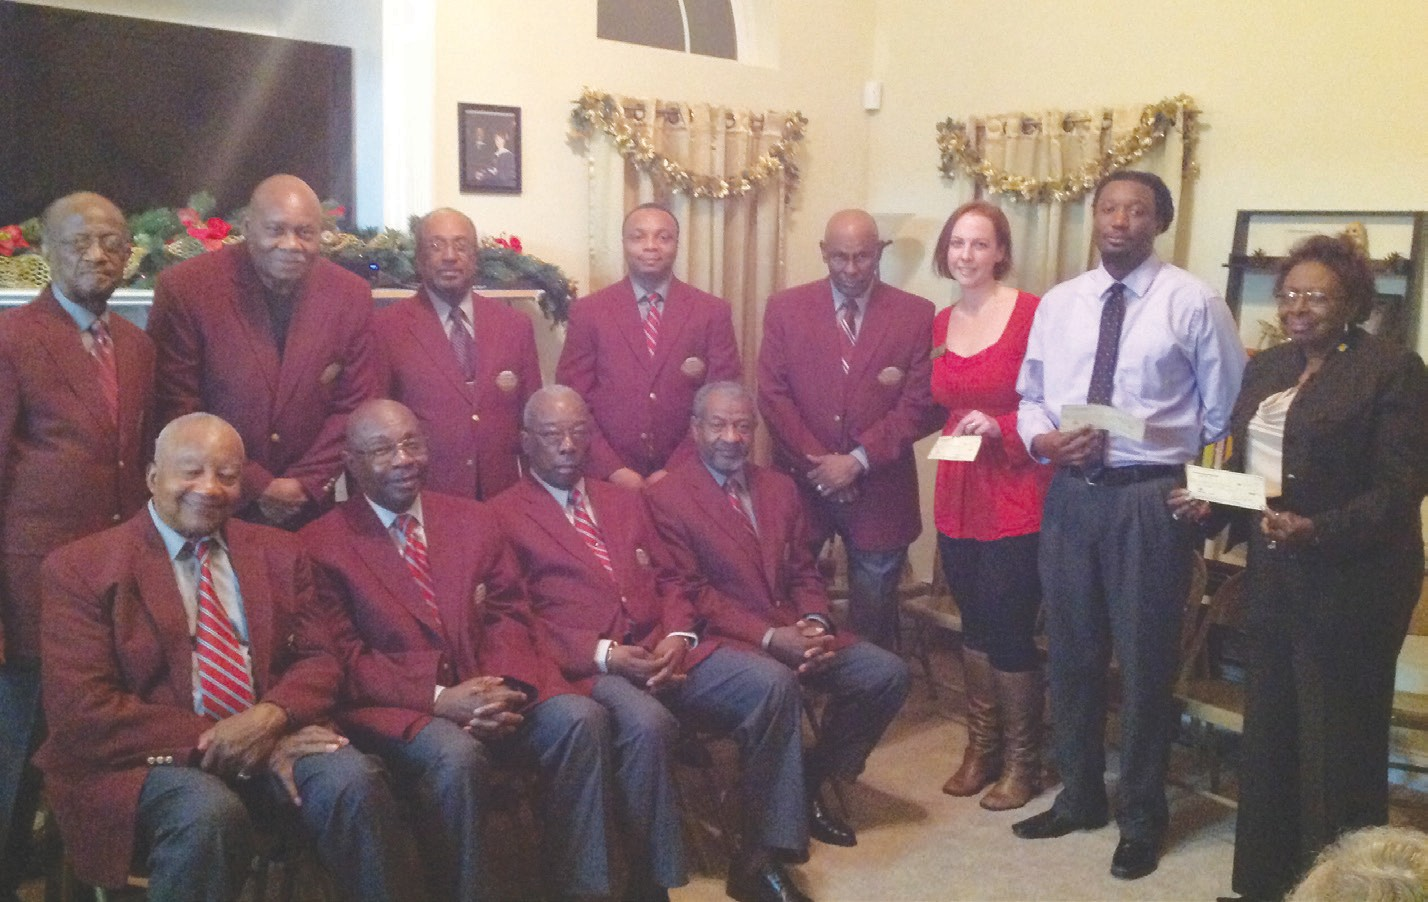 (L to R) Seated: William Mosley; Johnny Wilson; Christopher Jackson; Thomas Cornelius; Standing: Charles Johnson; George Jackson; Edward Smith; Paul Mosley; James Franklin; Recipients: Danielle Paul, Nehemiah Harden, Catherine Jackson (Members not present: Billy Kearse; Gilbert Henry; Eugene Washington; William Benyard; and Michael Glover)